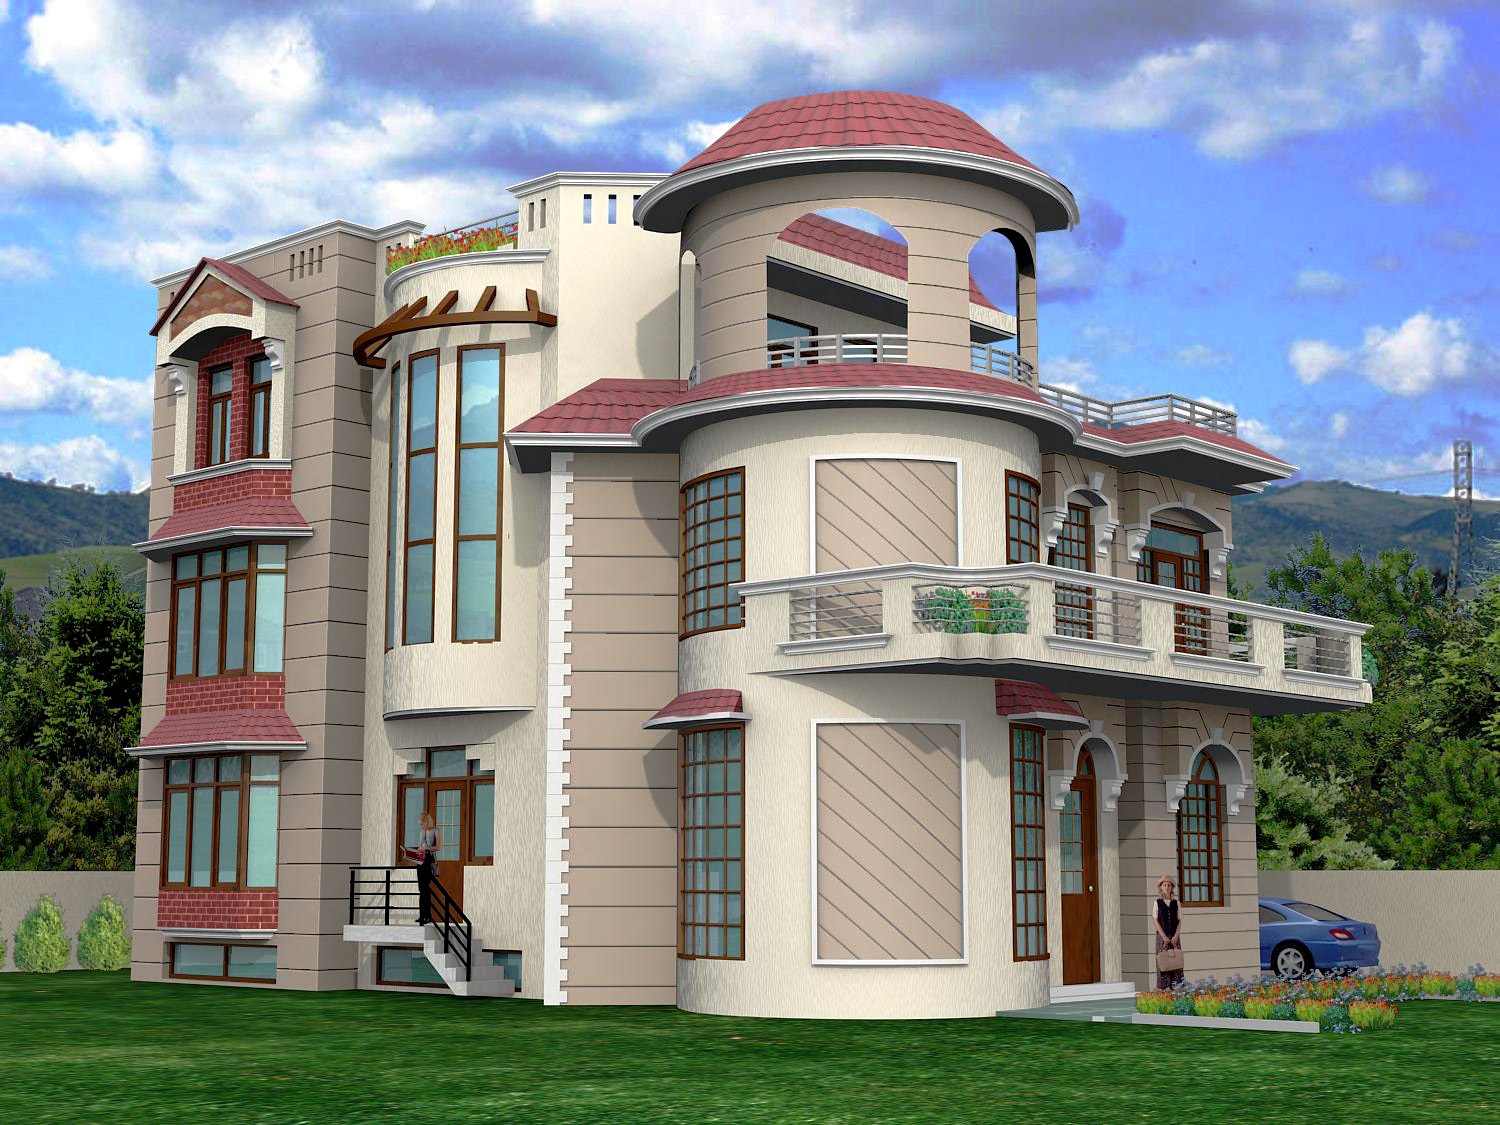 Front Elevation Of Building : Modern front elevation of residential building joy